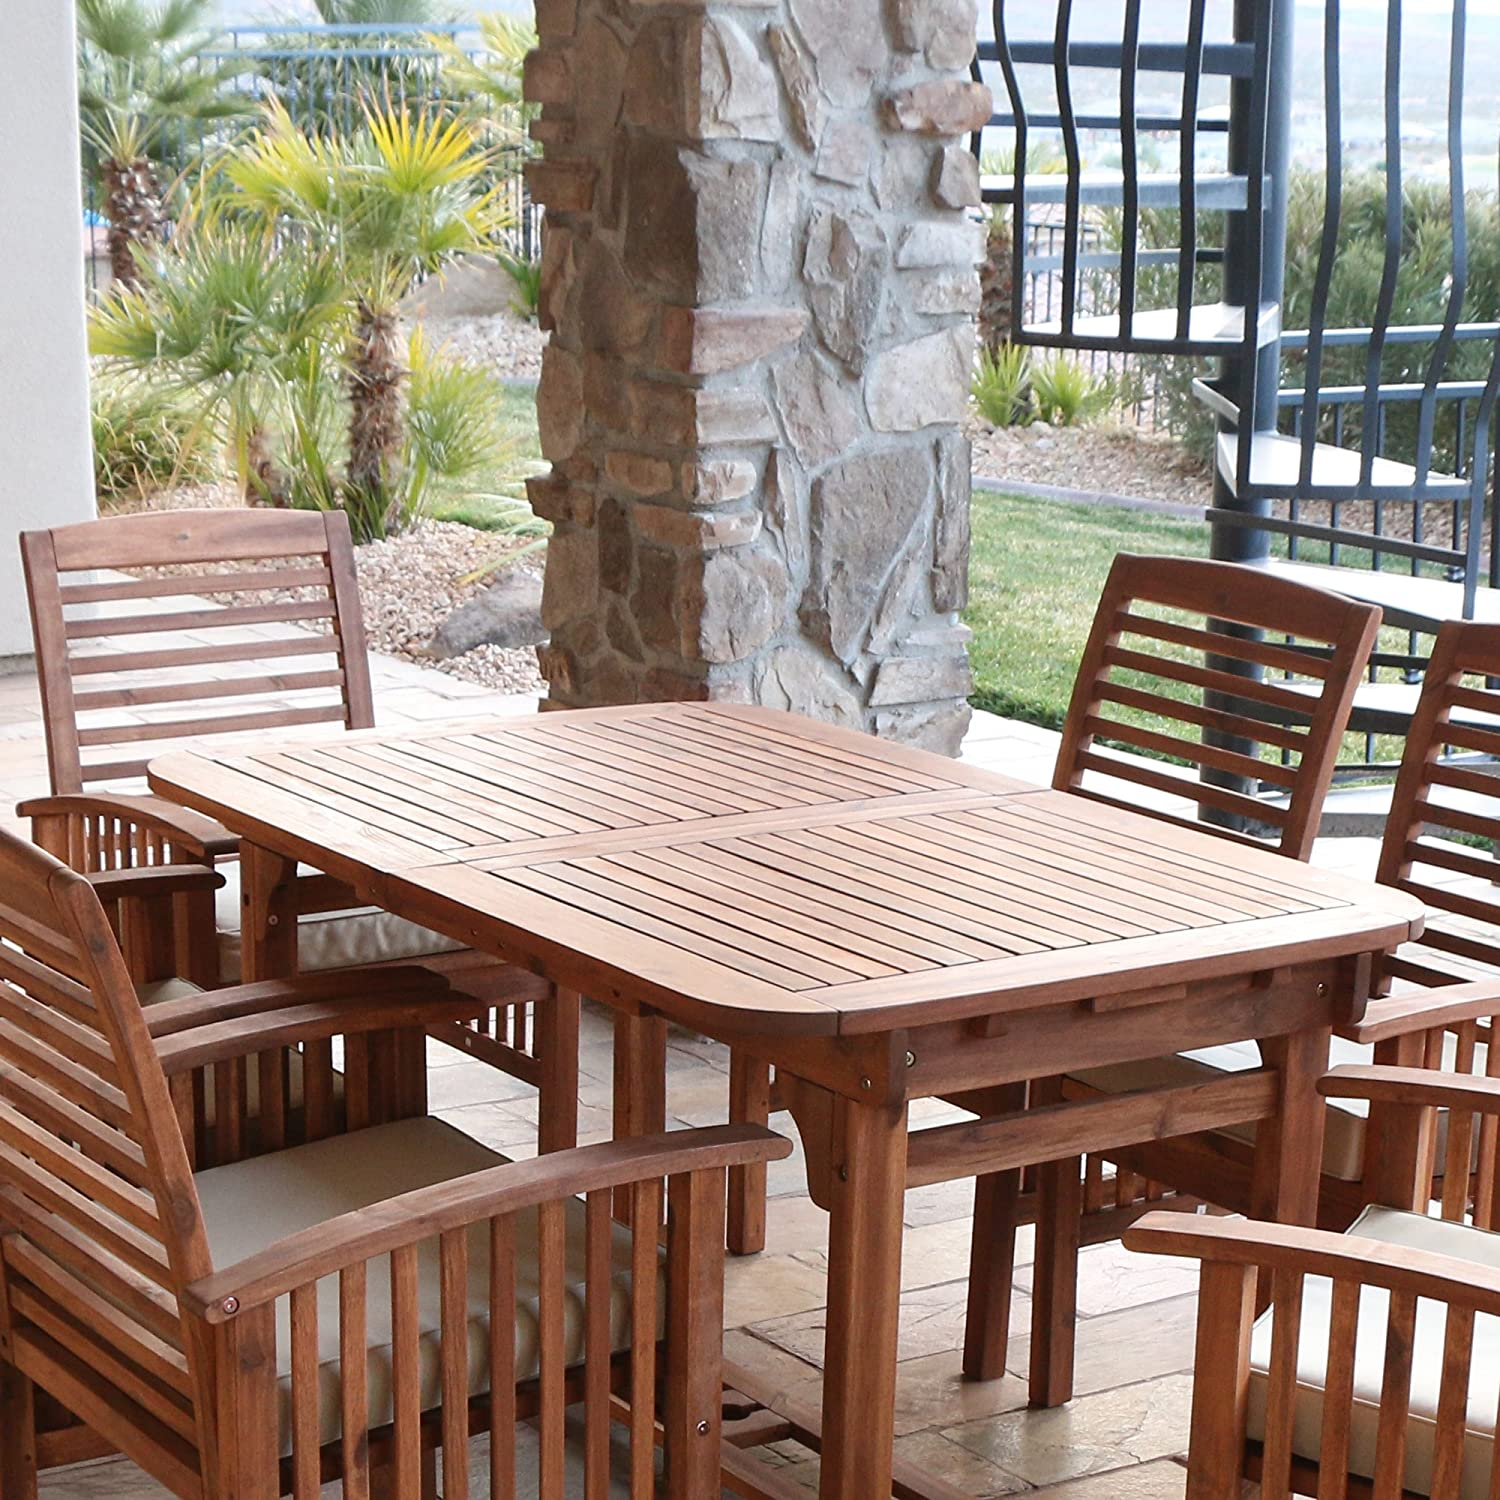 Amazon.com WE Furniture Solid Acacia Wood 6-Piece Patio Dining Set Garden u0026 Outdoor & Amazon.com: WE Furniture Solid Acacia Wood 6-Piece Patio Dining Set ...